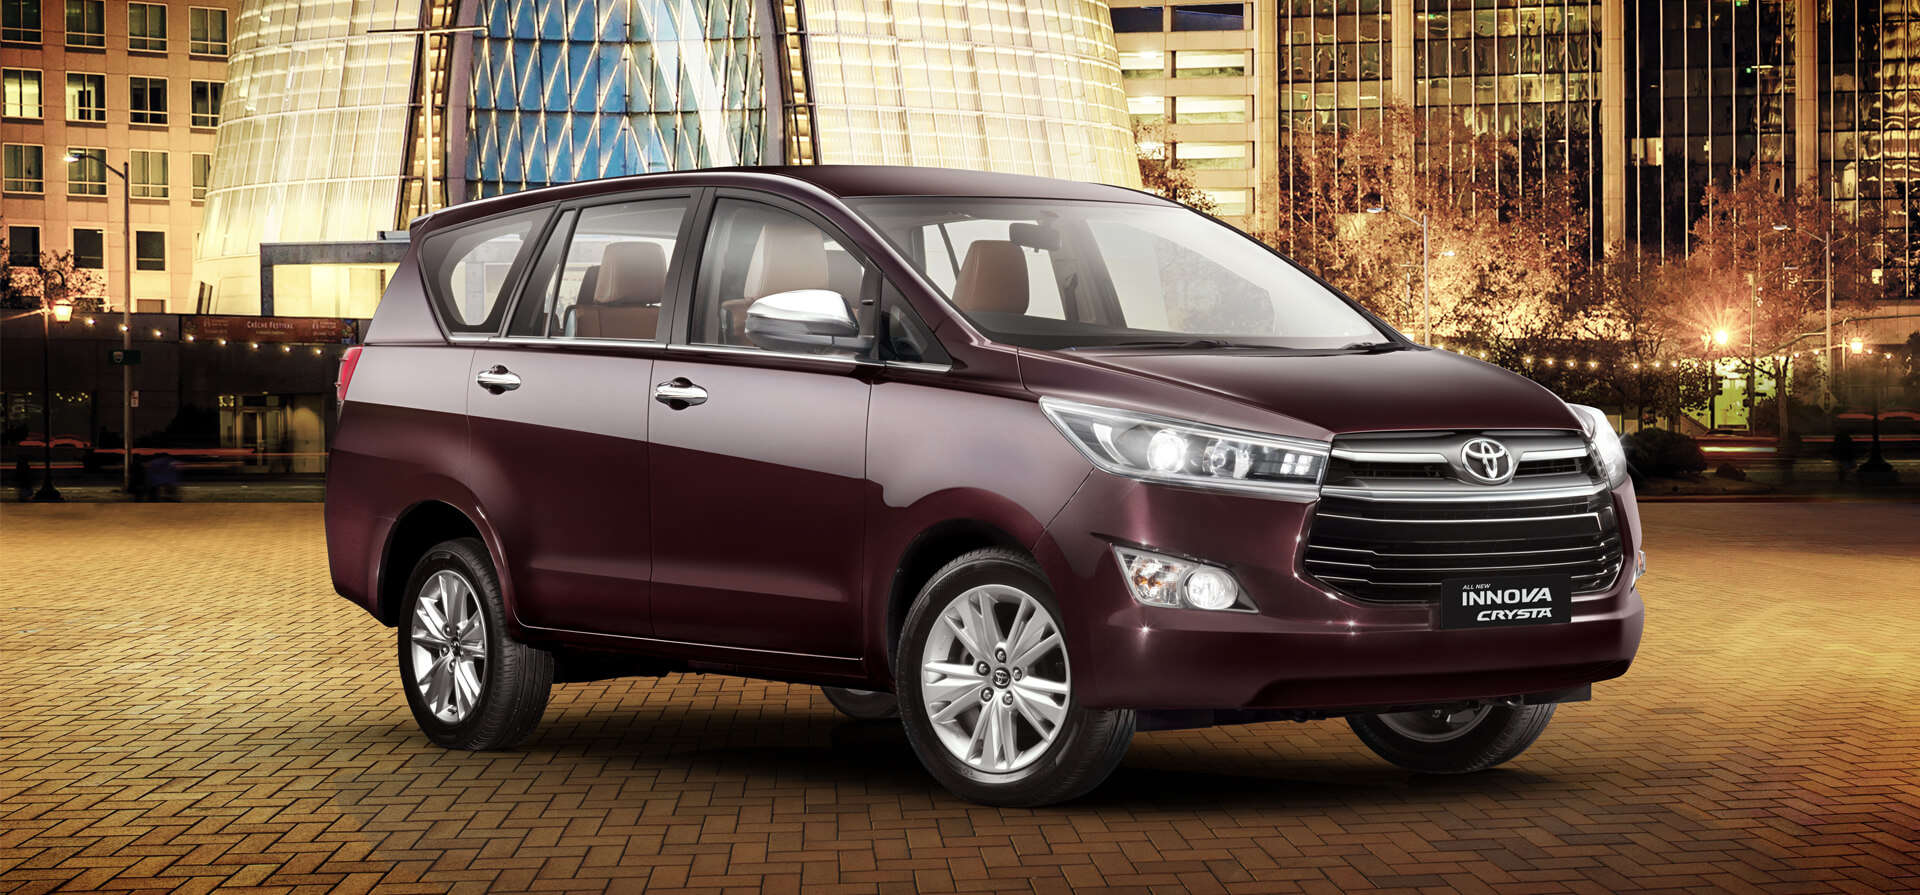 Toyota Innova Crysta Booking Toyota Opens Bookings For Bs Vi Compliant Innova Crysta Auto News Et Auto